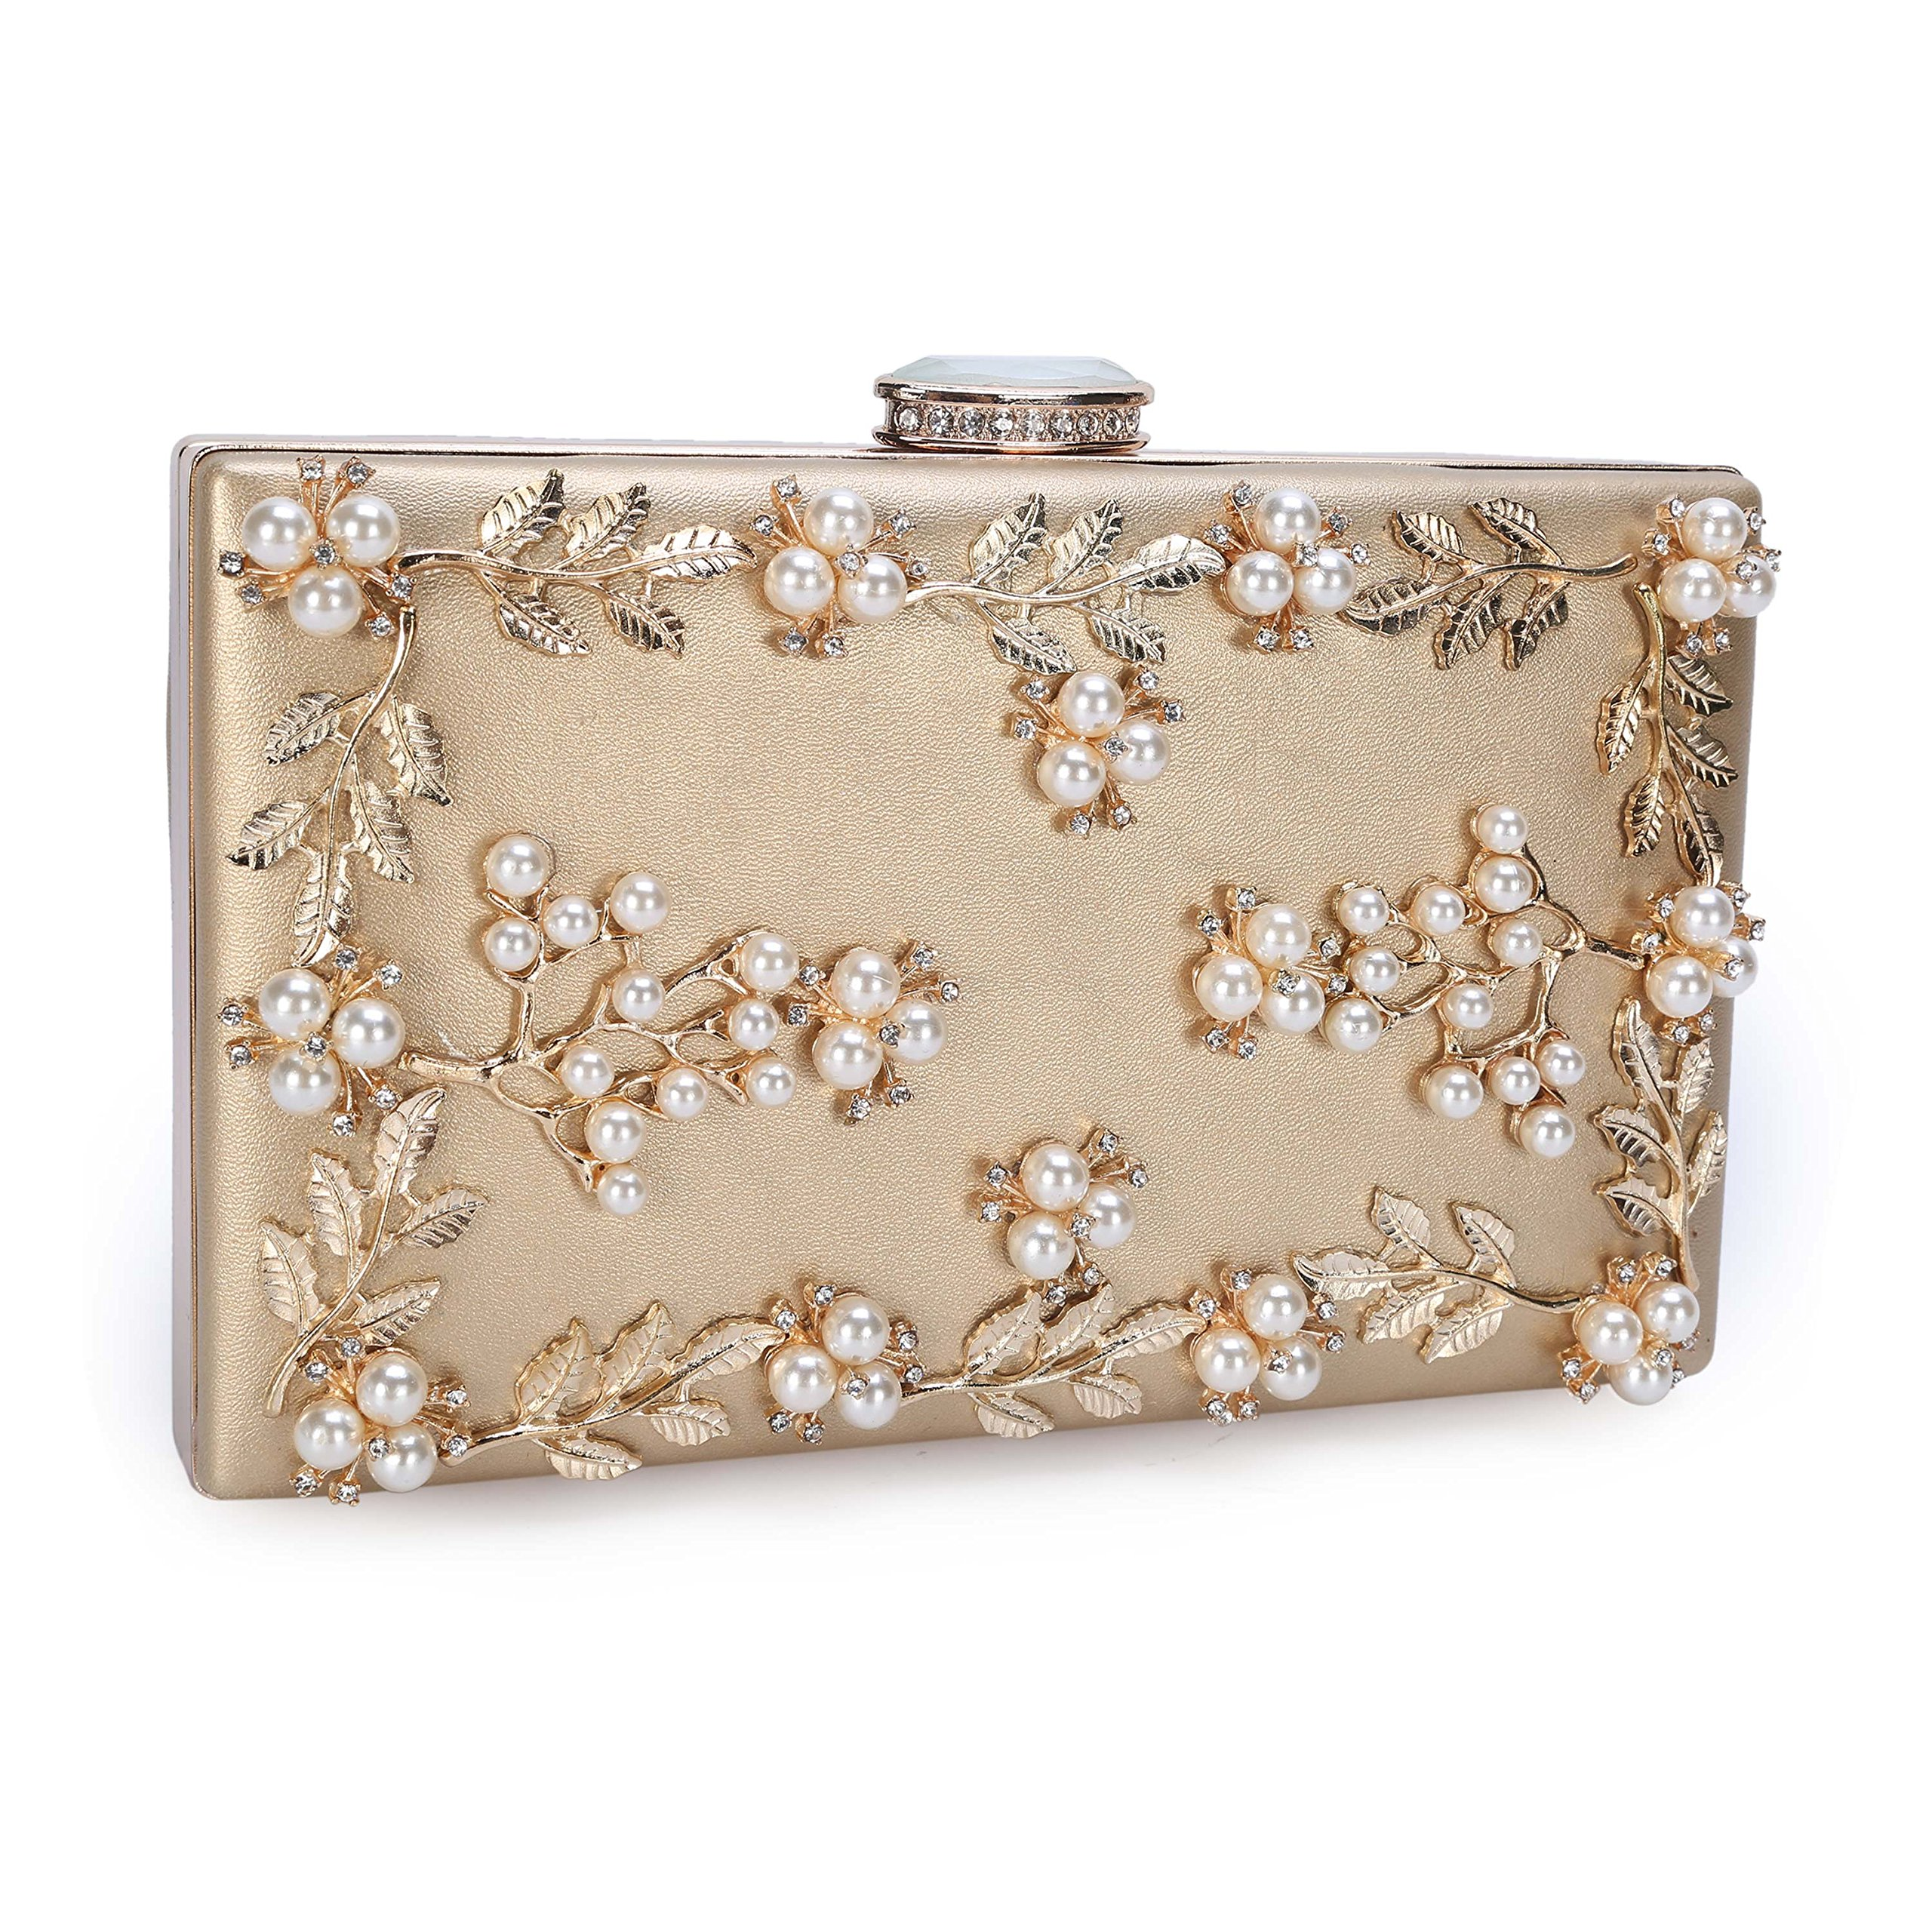 Chichitop Women's Floral Pearl Beaded Evening Handbags Party Clutch Bridal Purse Golden